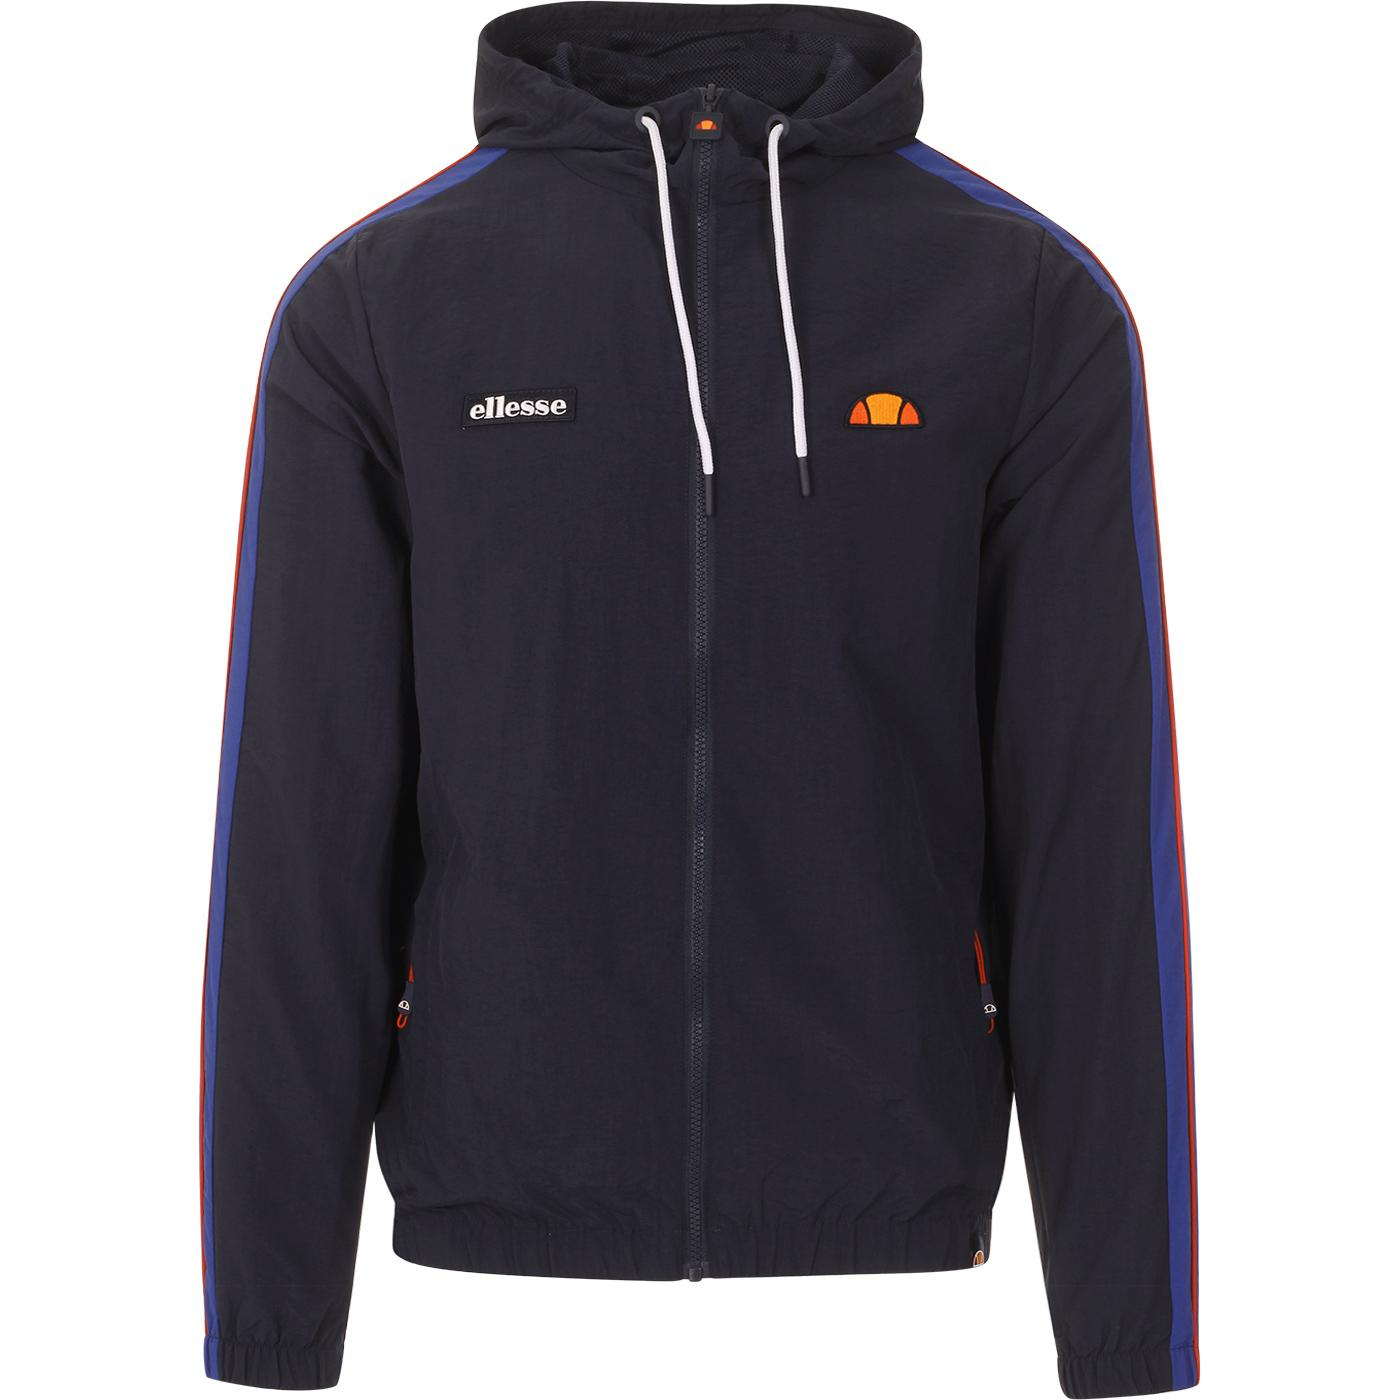 Fairchild ELLESSE Retro 90s Hooded Track Jacket